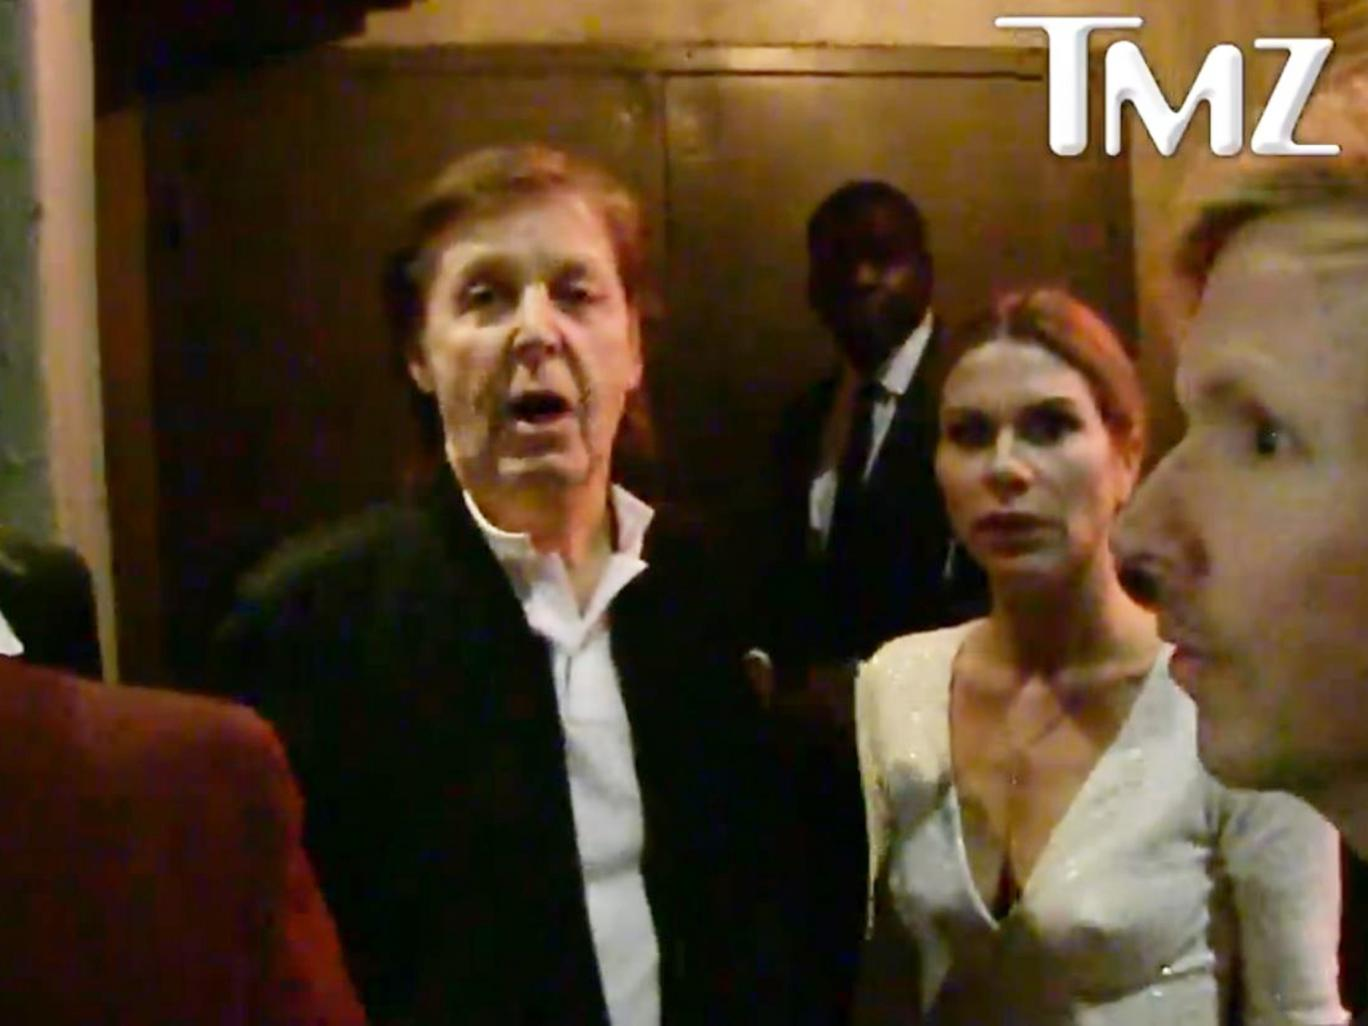 Former Beatle and recording legend Sir Paul McCartney is turned away from a Grammy's afterparty